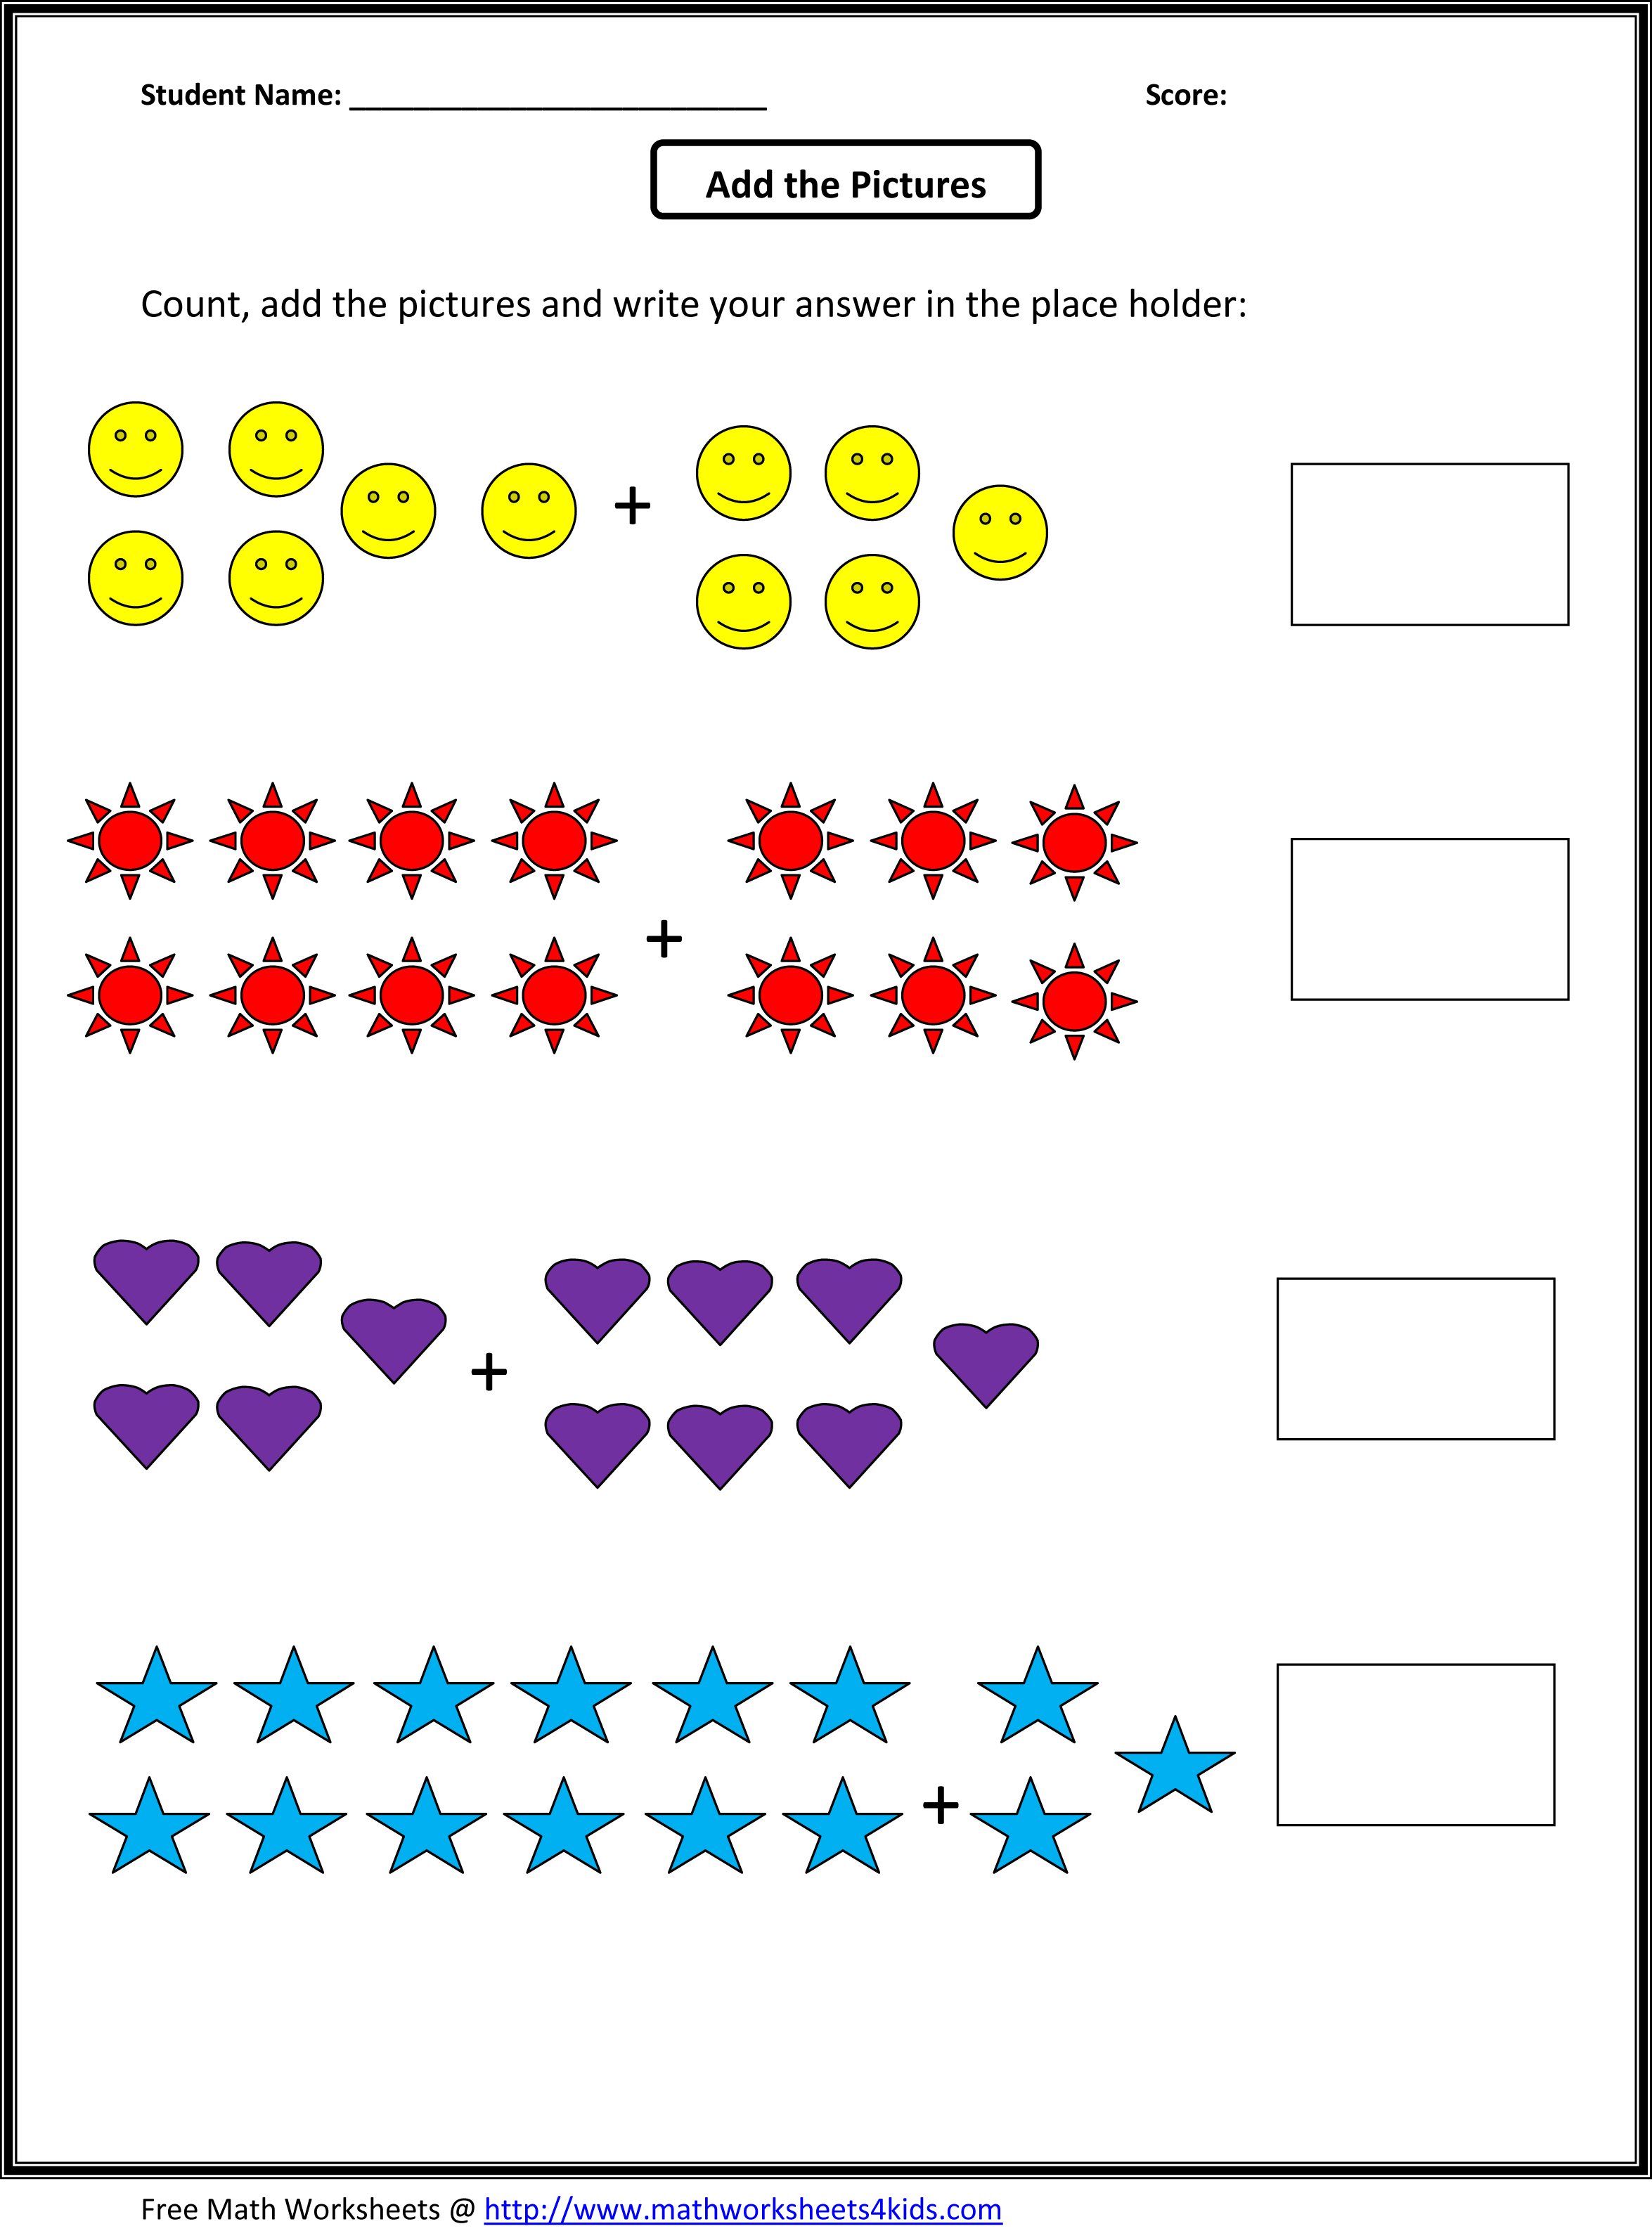 Weirdmailus  Personable Grade  Maths Worksheet  Reocurent With Great Math Worksheets For St Grade Free  Reocurent With Delightful Appositive Phrases Worksheets Also Checkbook Register Worksheet In Addition St Grade History Worksheets And College Reading Comprehension Worksheets As Well As Weather Printable Worksheets Additionally Picture Sequence Worksheets From Reocurentcom With Weirdmailus  Great Grade  Maths Worksheet  Reocurent With Delightful Math Worksheets For St Grade Free  Reocurent And Personable Appositive Phrases Worksheets Also Checkbook Register Worksheet In Addition St Grade History Worksheets From Reocurentcom